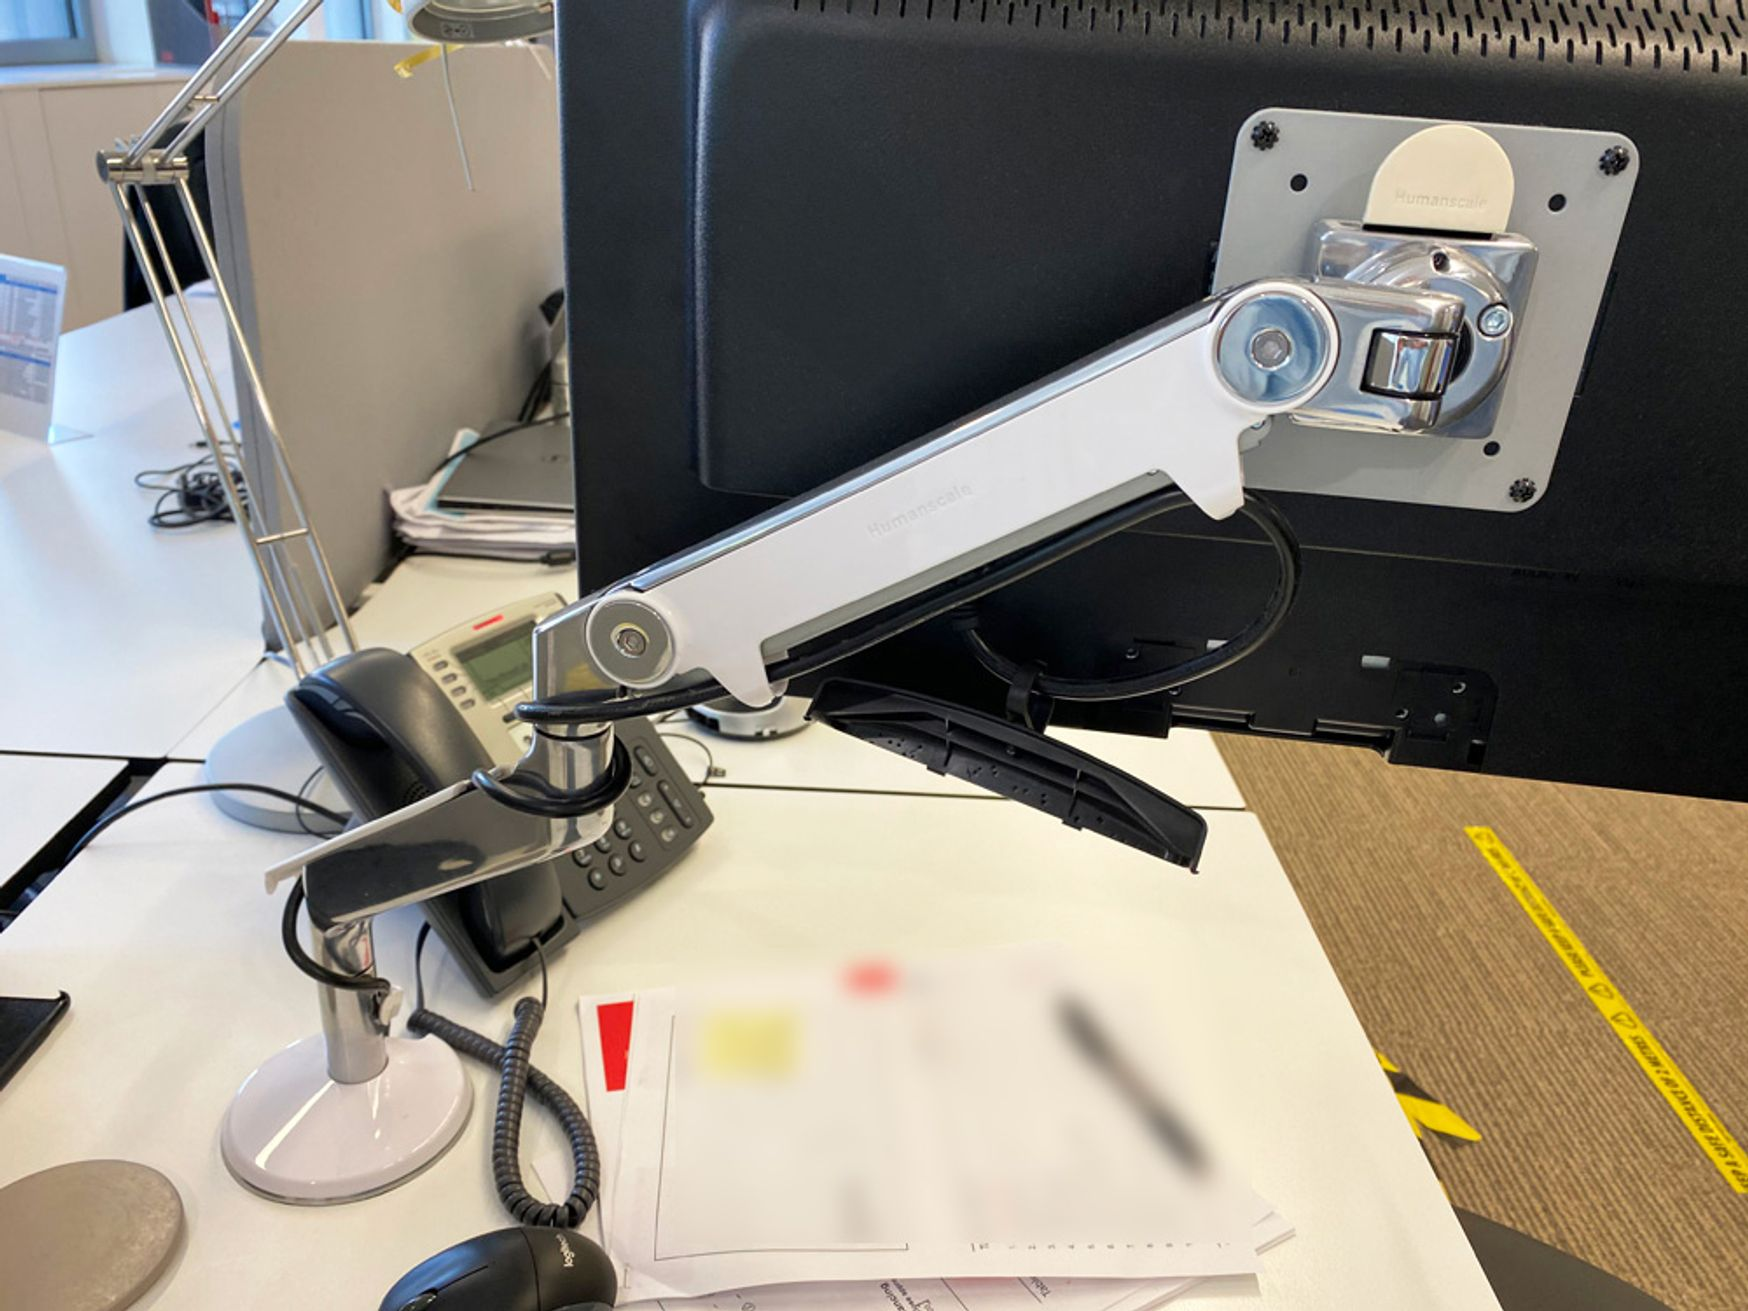 If you don't already have one of these - get one, you'll never look back! Humanscale 'M2' monitor arms